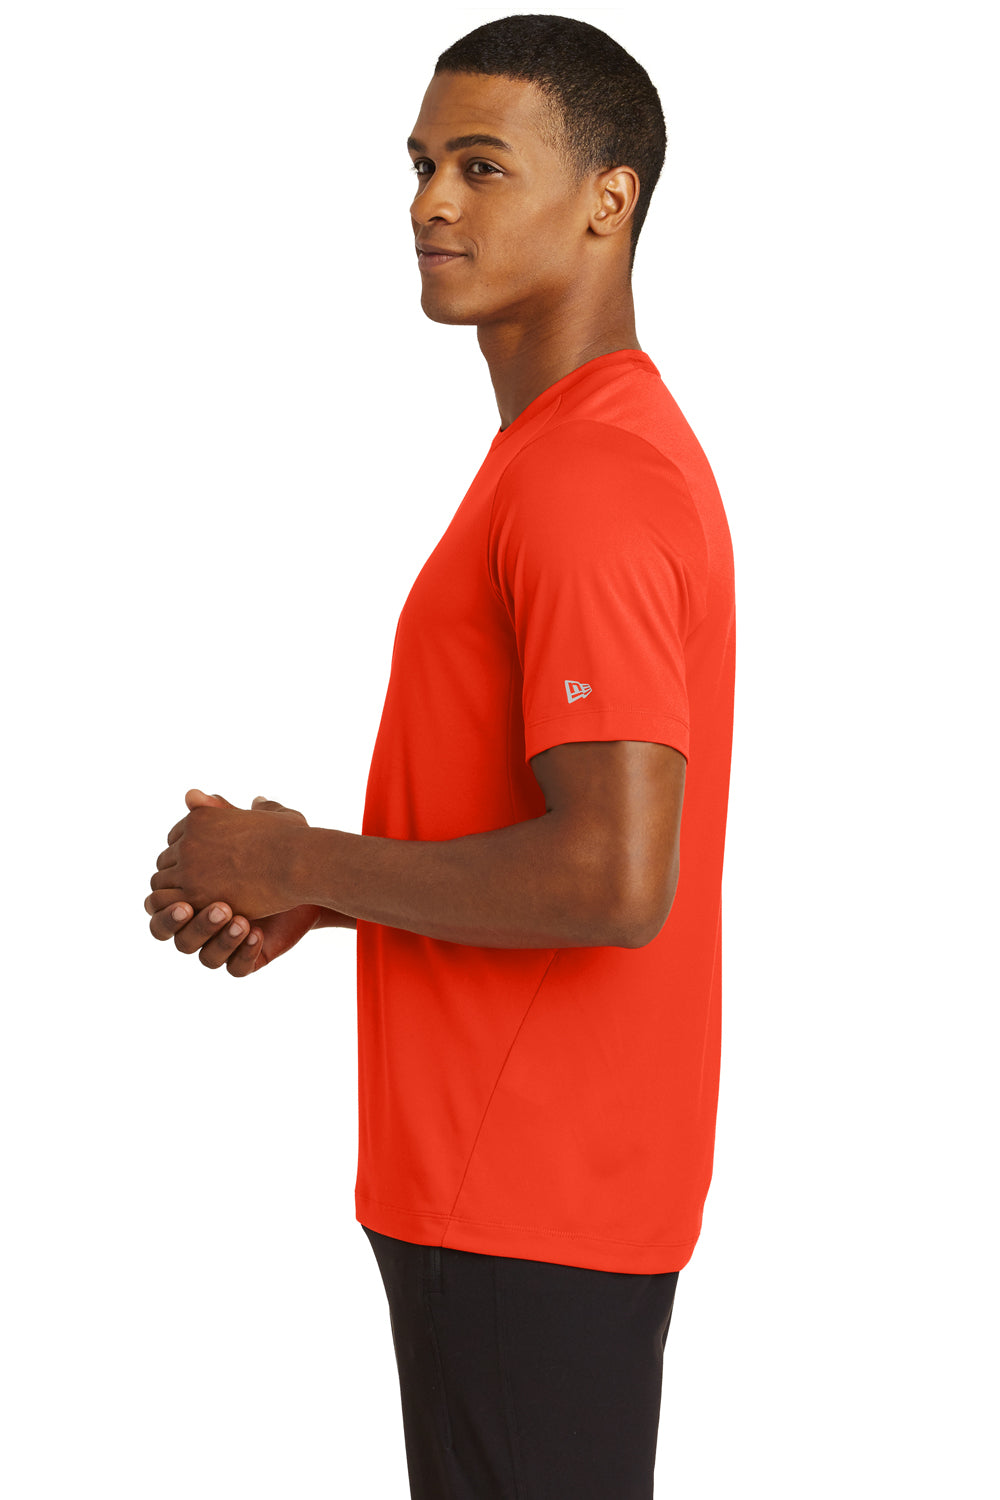 New Era NEA200 Mens Series Performance Jersey Moisture Wicking Short Sleeve Crewneck T-Shirt Orange Side